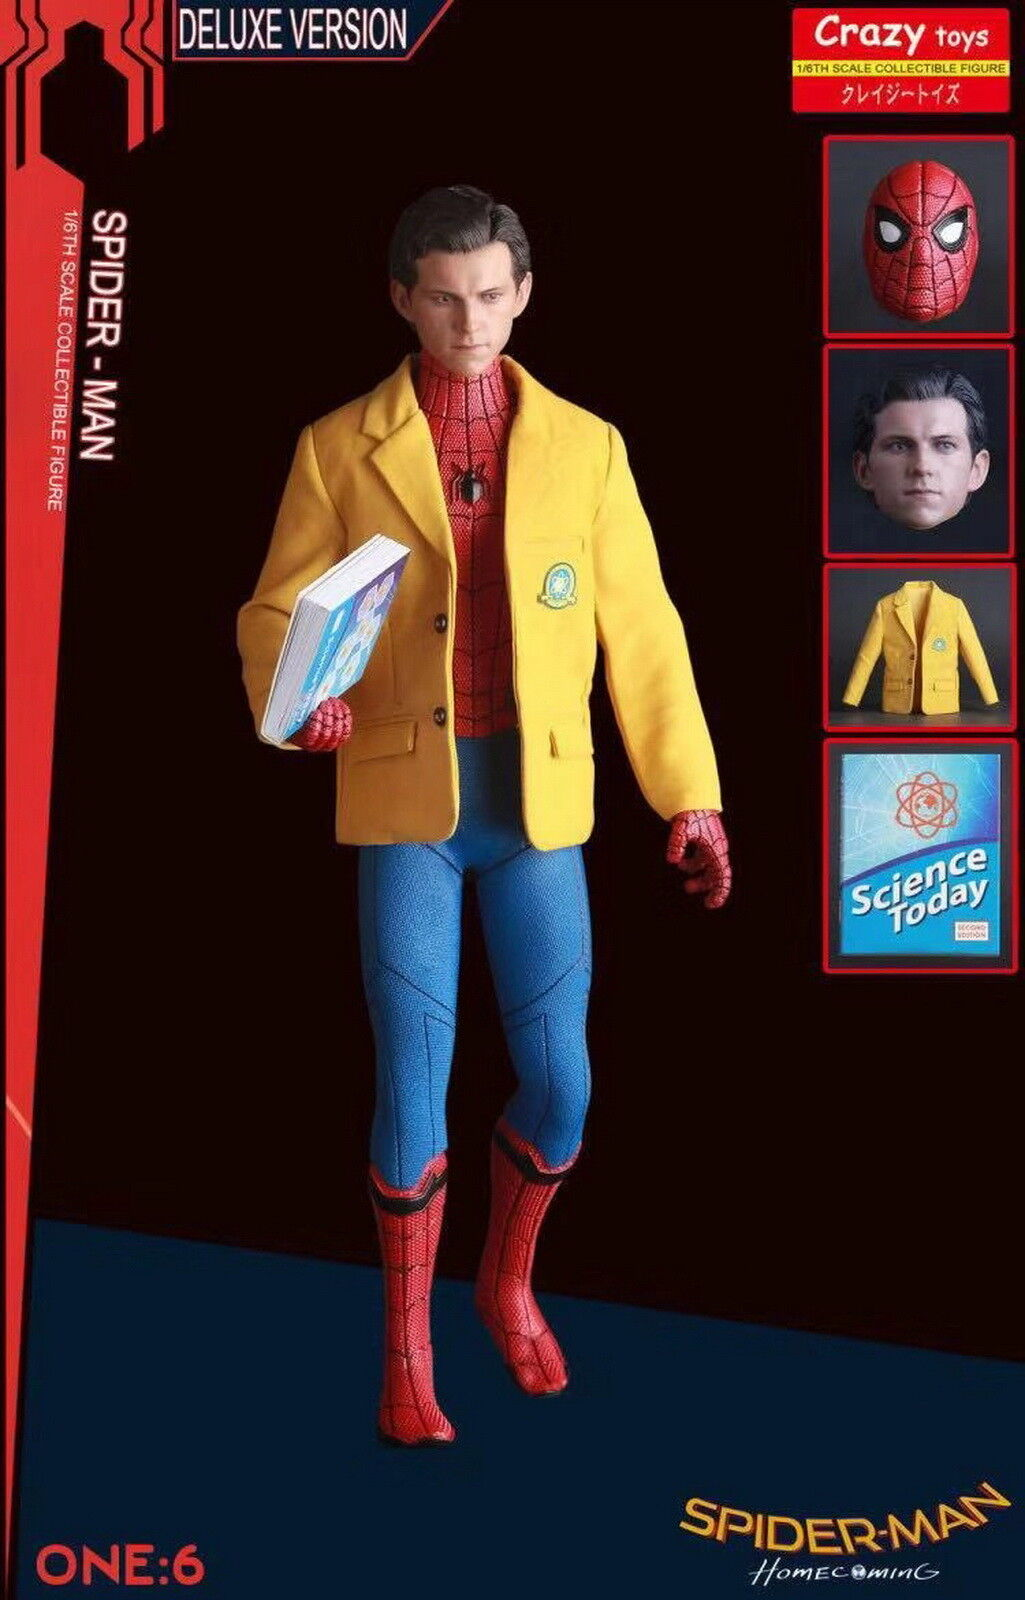 1/6TH SPIDER MAN HOMECOMING 12'' DELUXE VERSION BY CRAZY TOYS DOLL STATUE GIFT